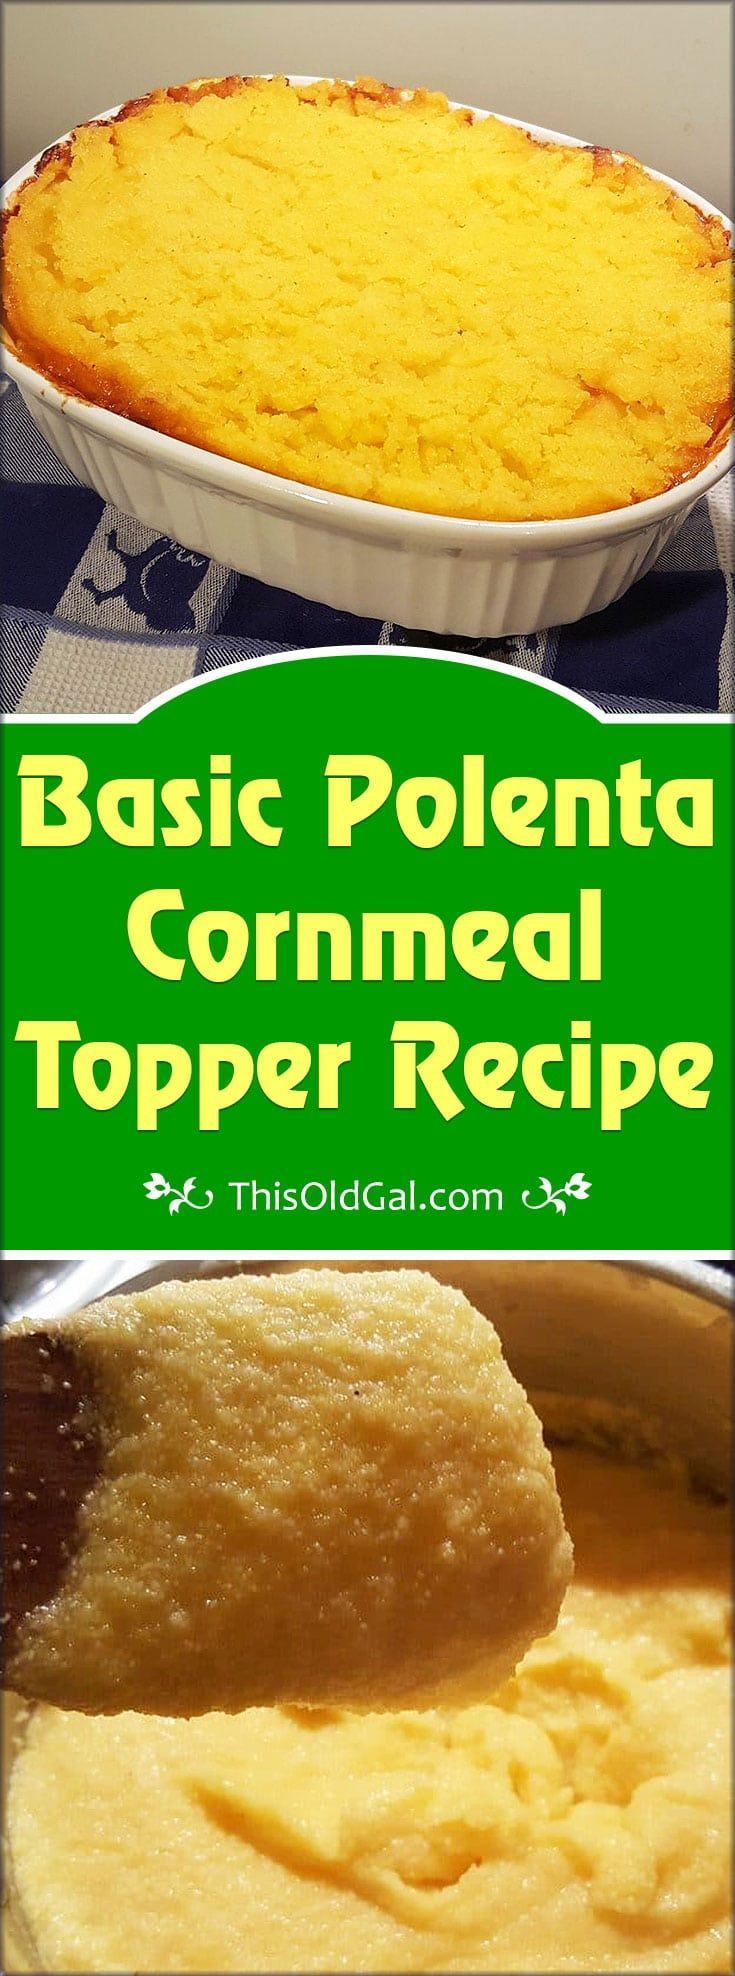 This Basic Polenta Cornmeal Topper Recipe Is All You Need To Cook Up All Kinds Of Delicious Polenta Recipes Including Recipes Cornmeal Recipes Polenta Recipes